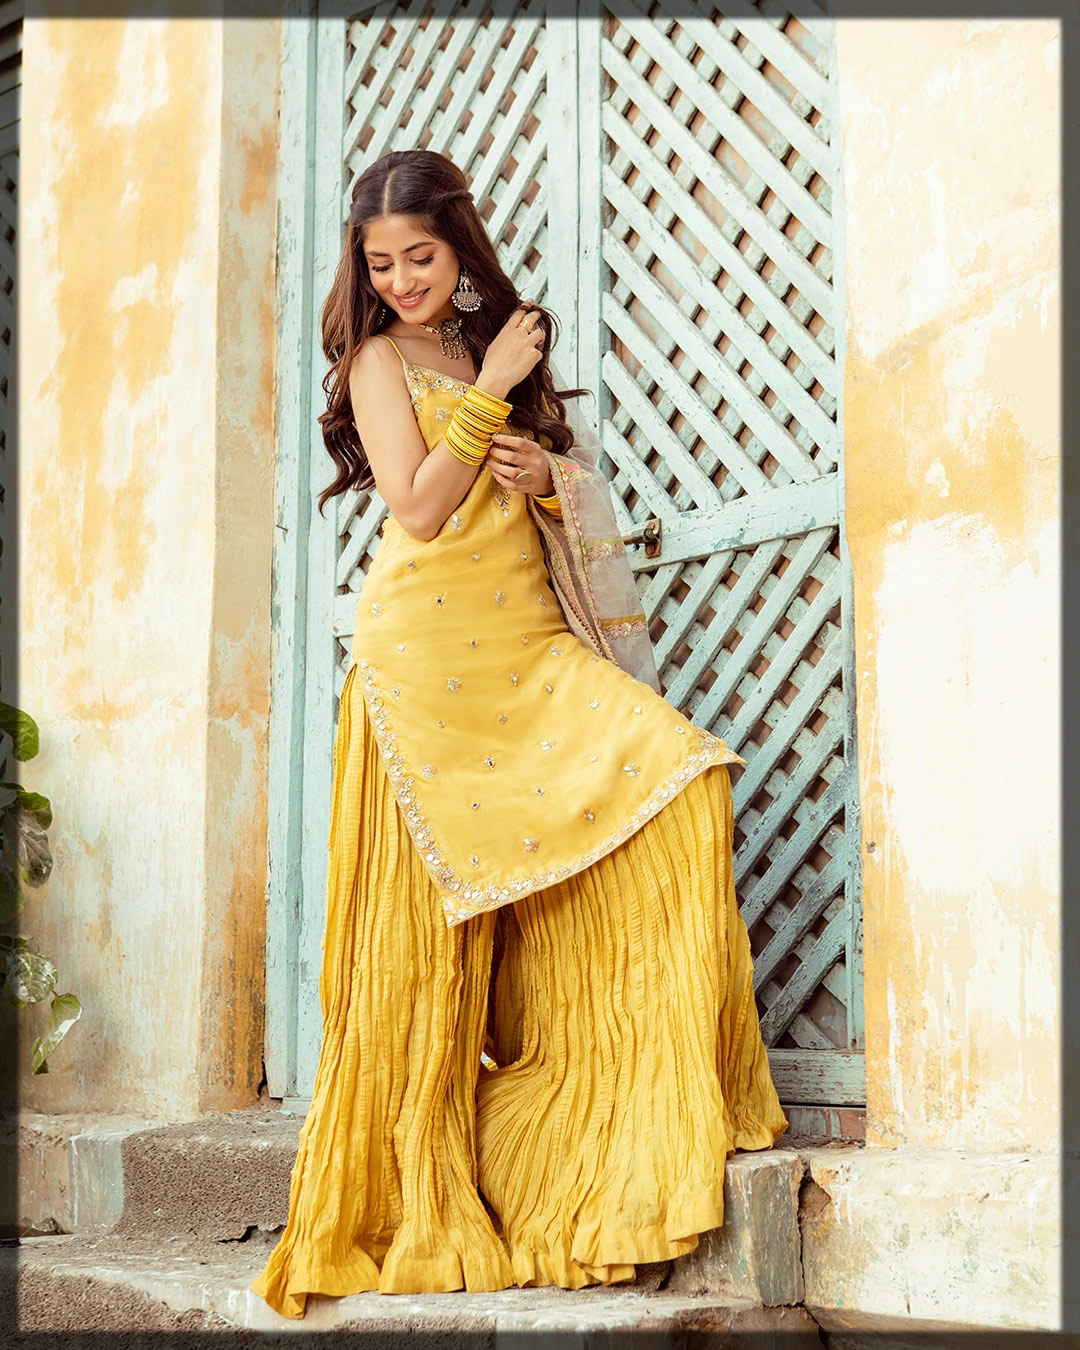 fancy yellow silk outfit